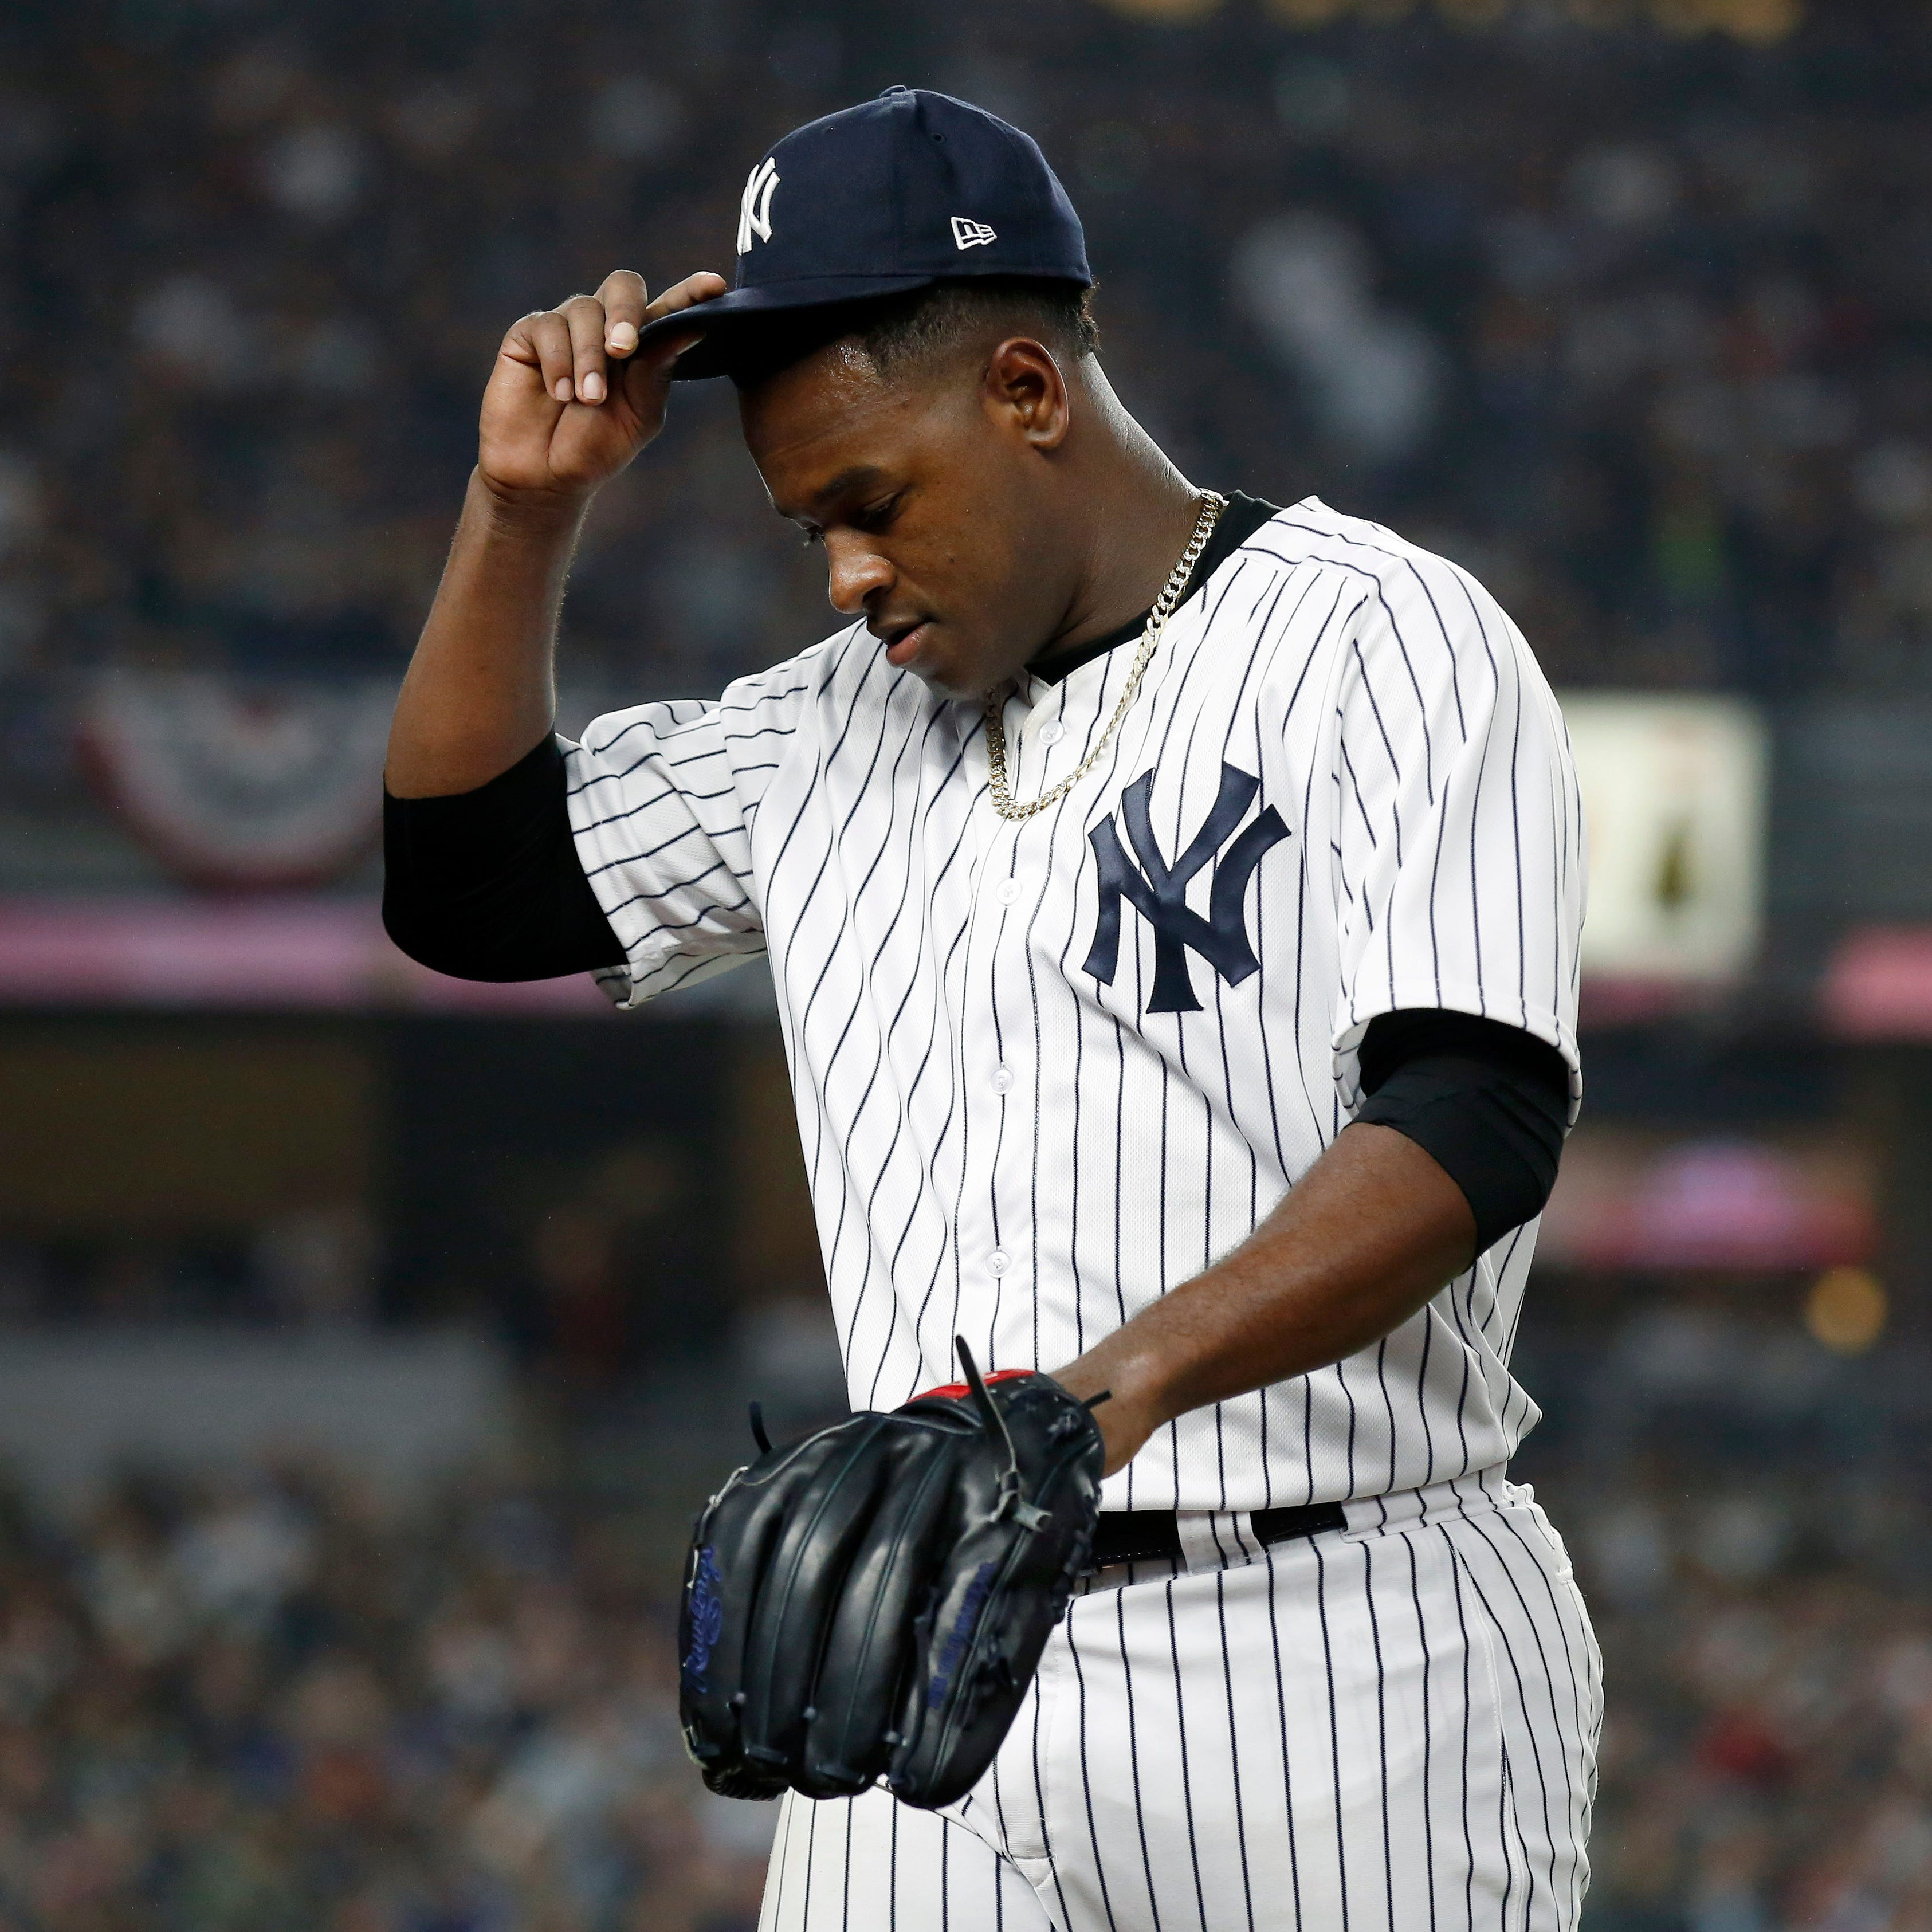 Yankees manager Aaron Boone: I should have taken Luis Severino out of Game 3 sooner'